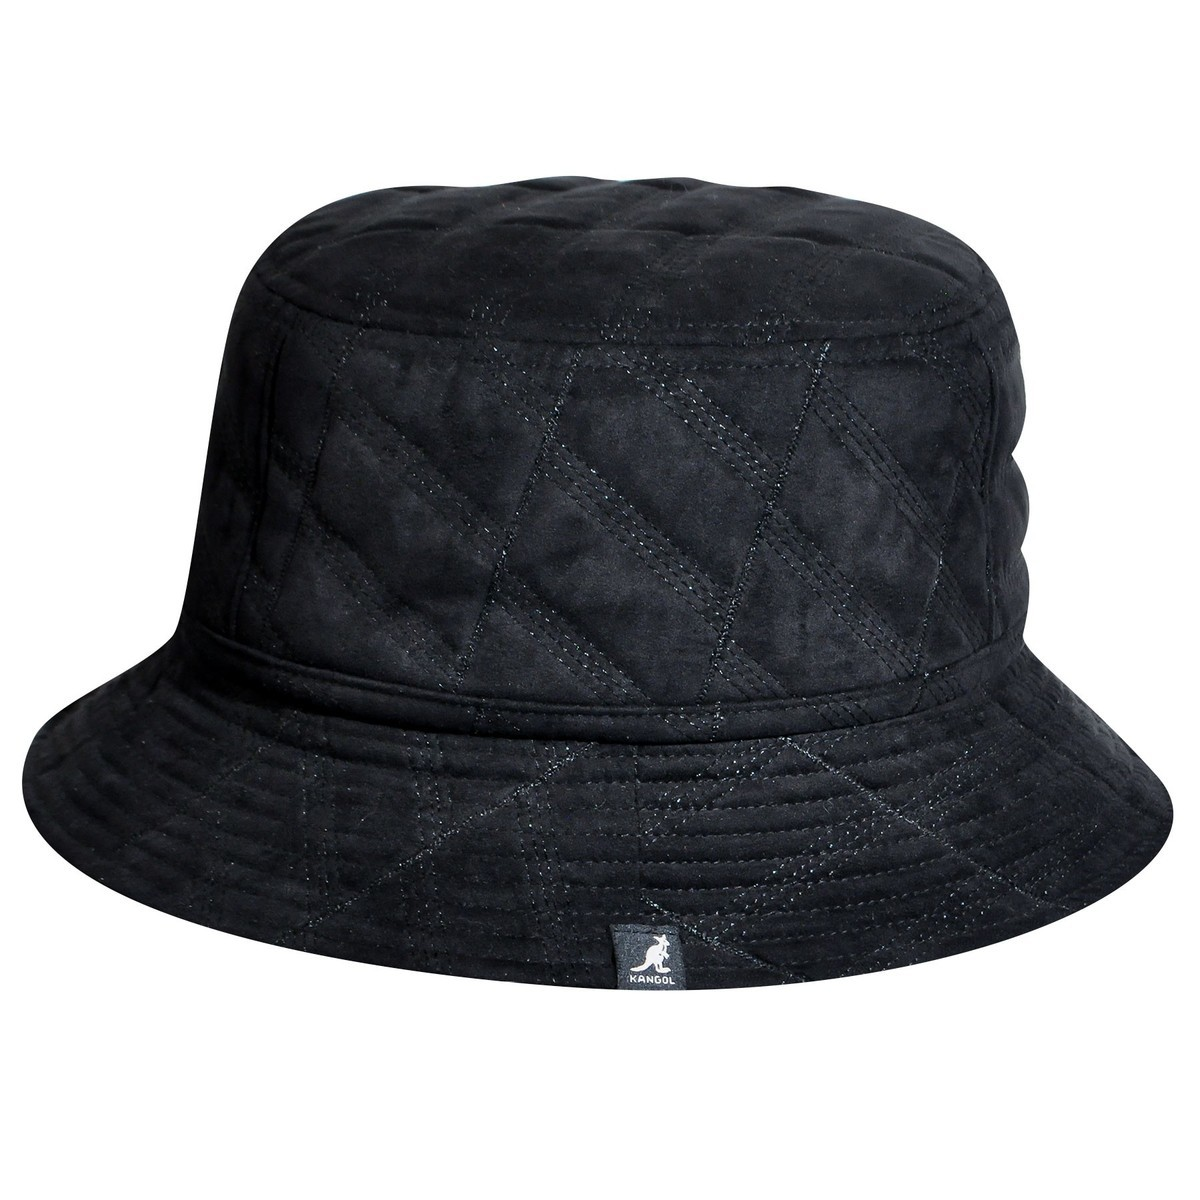 Kangol カンゴール Quilted Bucket BLACK バケットハット 帽子 BLACK